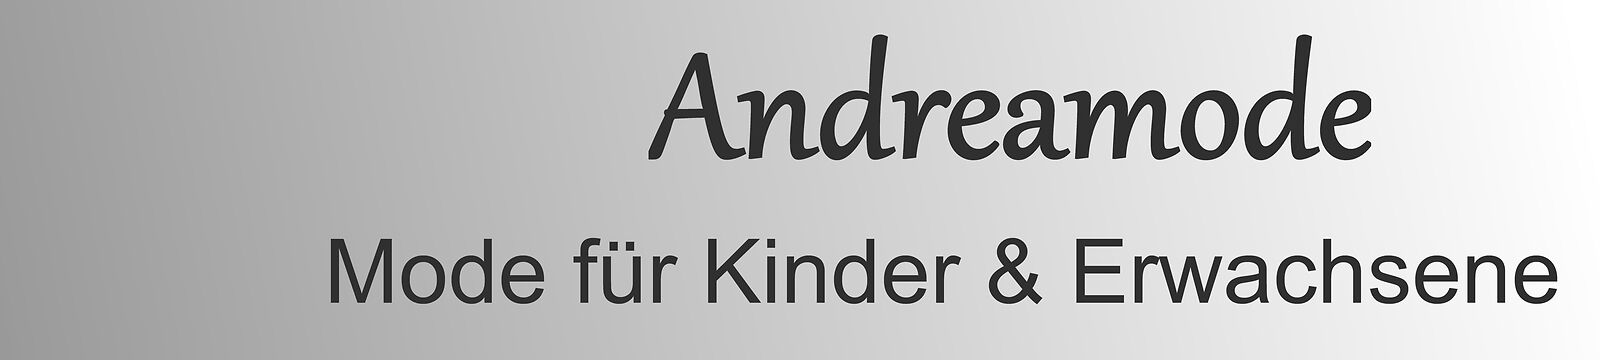 Andreamode